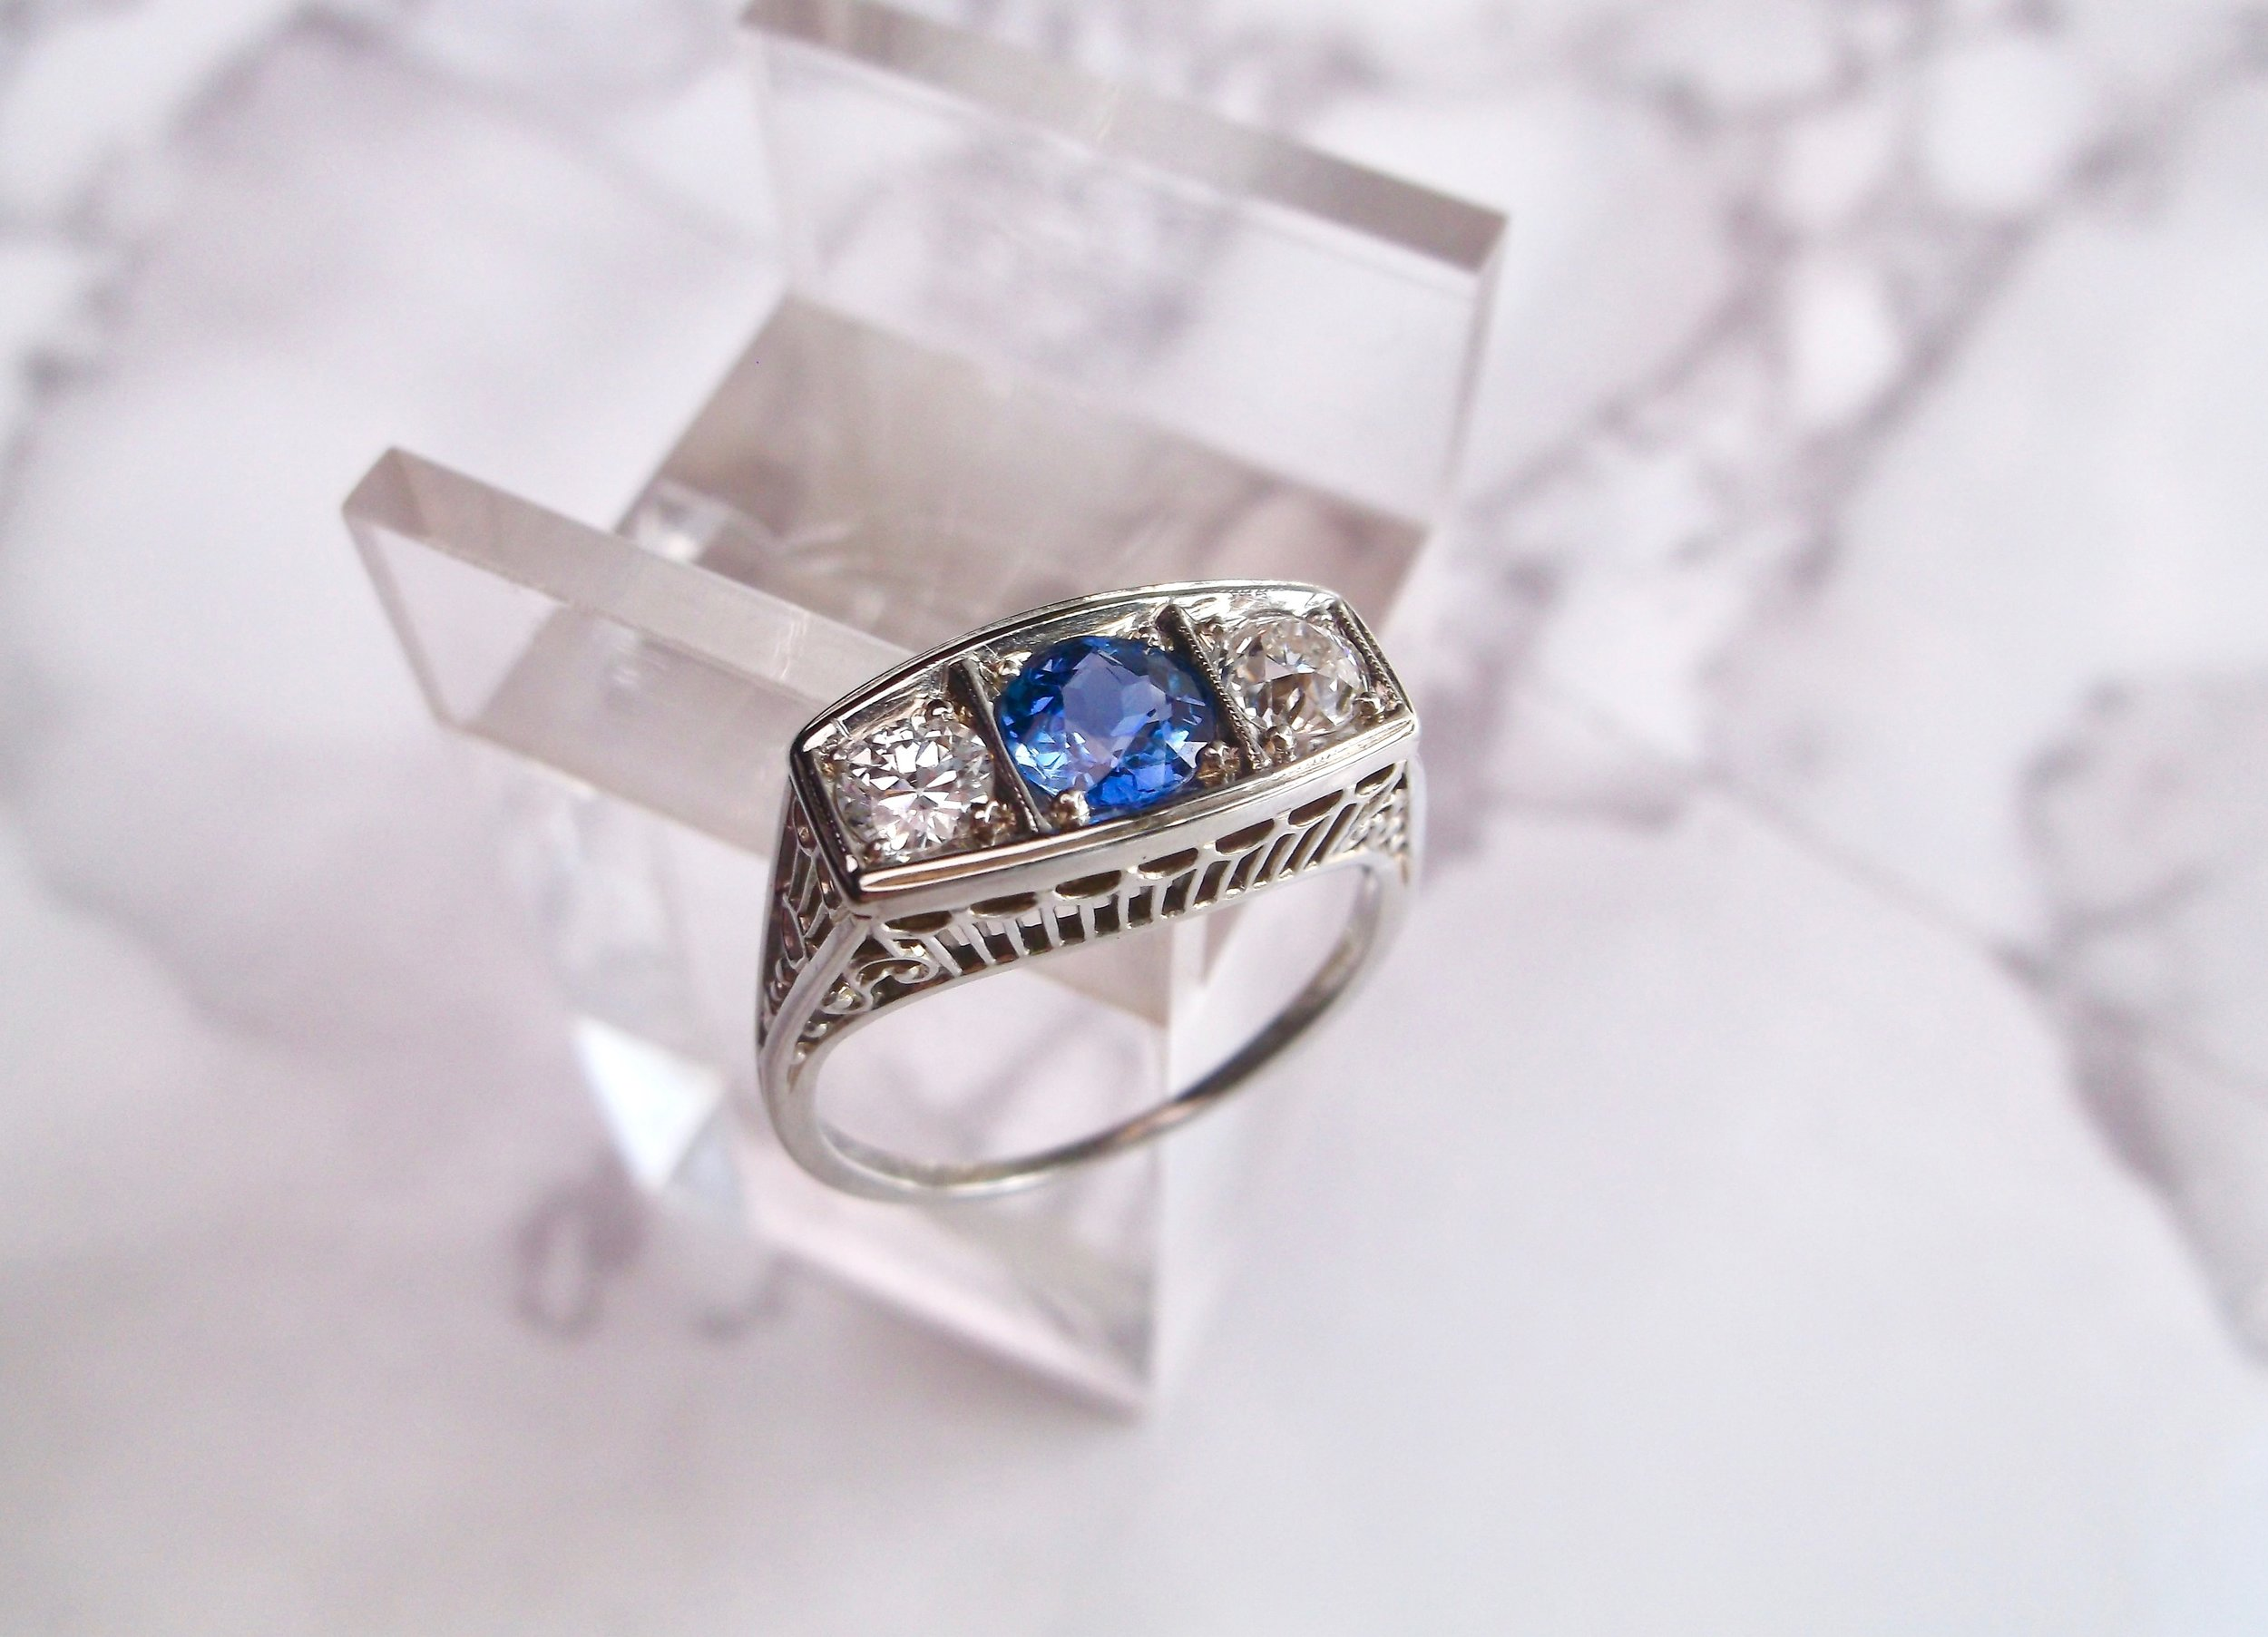 Unique, antique and nontraditional - our kind of engagement ring! We think this beautiful Art Deco diamond and sapphire ring would sure make someone happy! Could it be you??Shop this lovely ring  HERE .